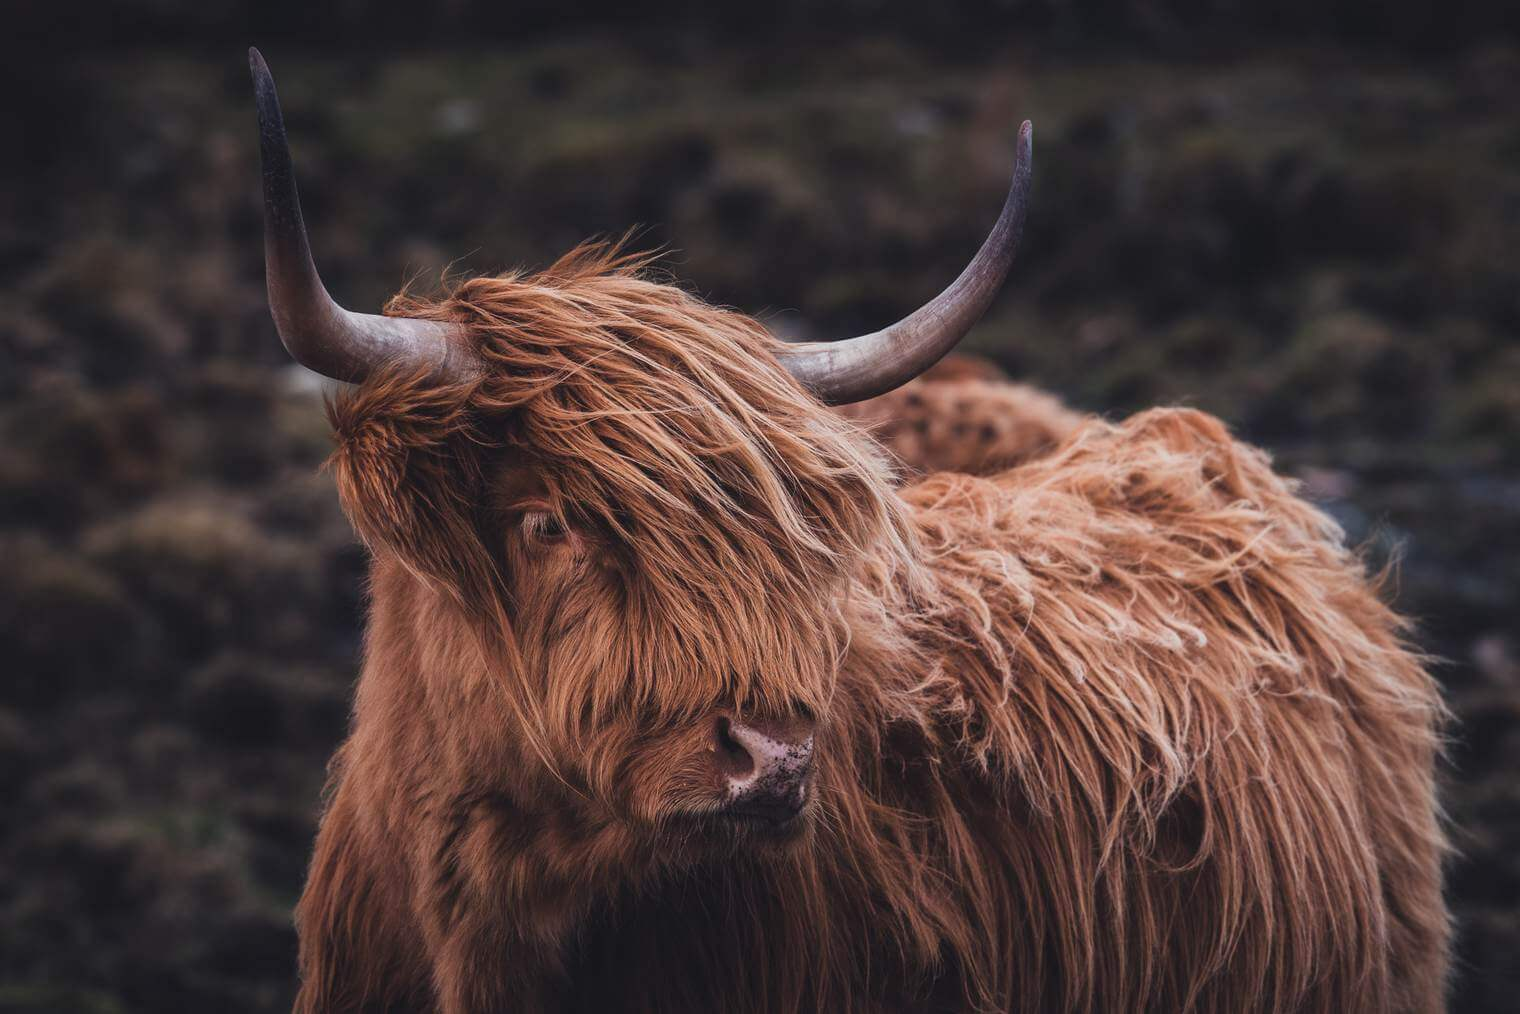 Scottish Highland Cattle in Moody Tones